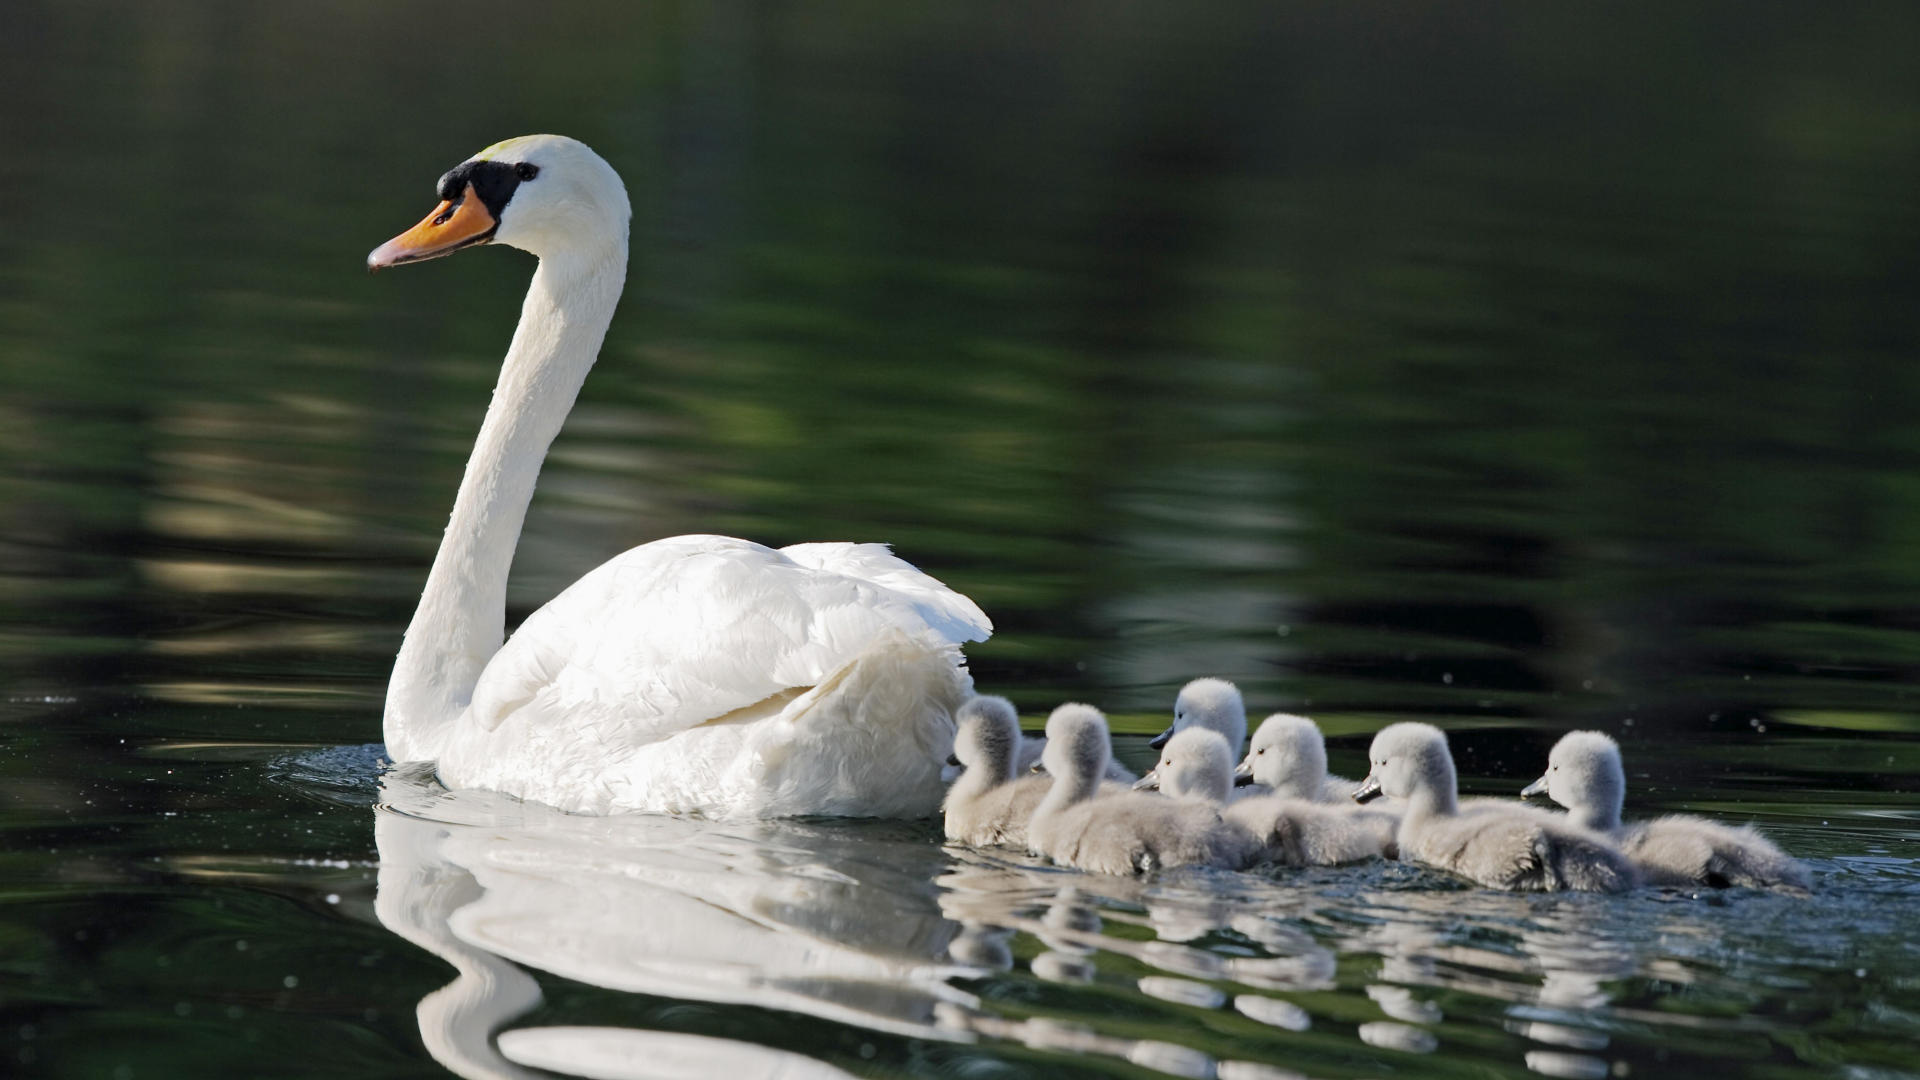 37522 download wallpaper Landscape, Birds, Swans screensavers and pictures for free